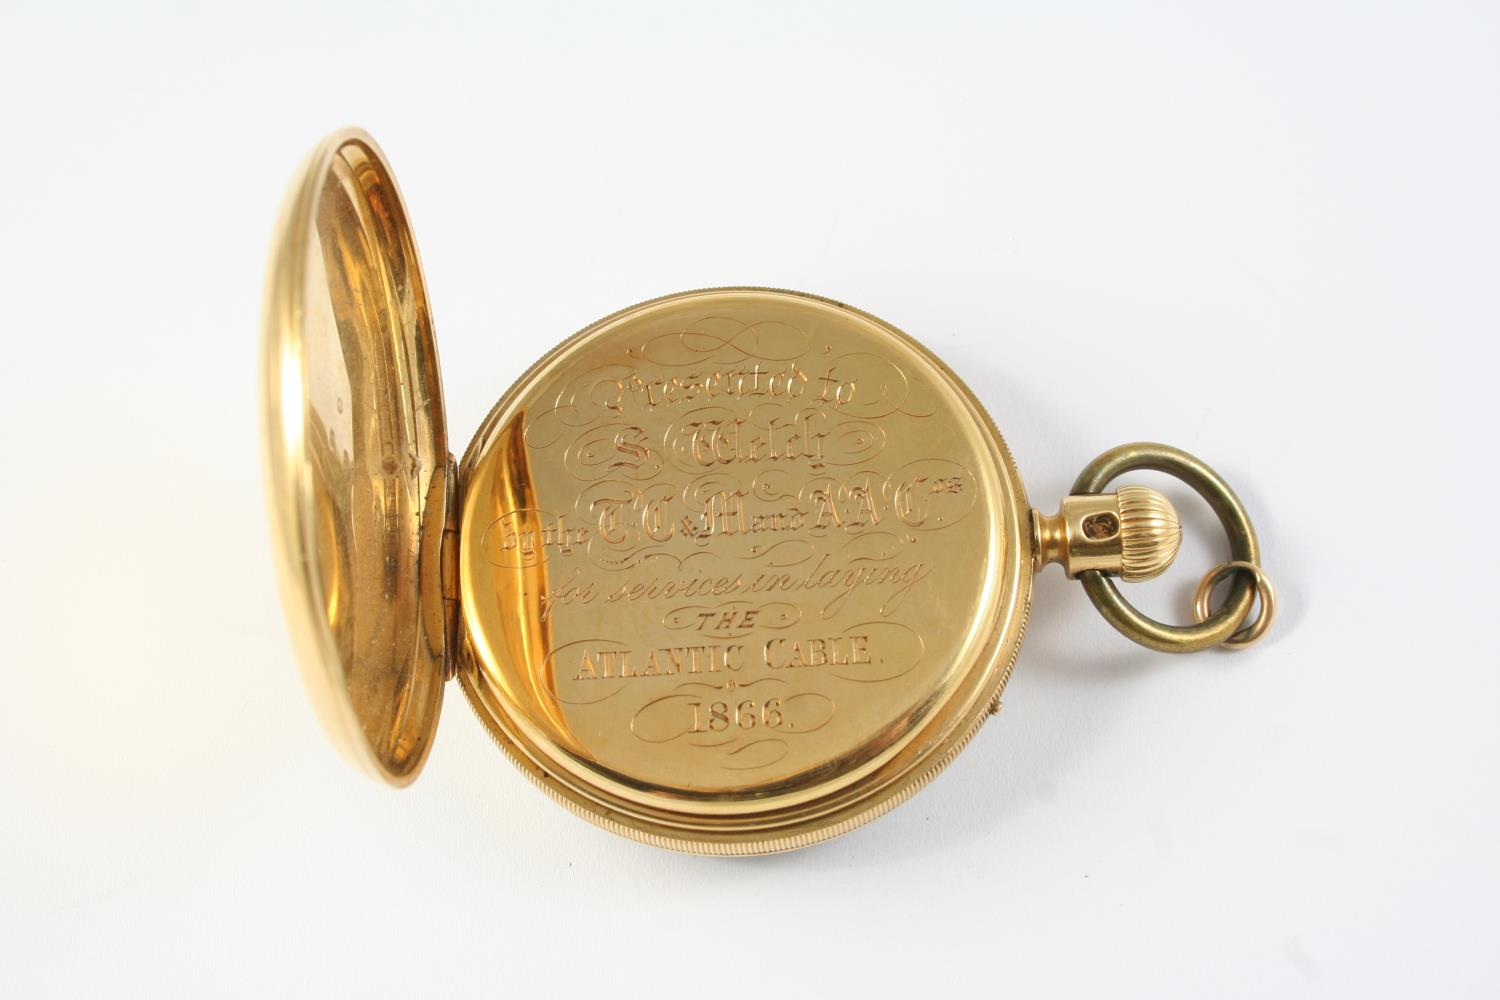 AN EARLY KEYLESS 18CT GOLD OPEN FACED POCKET WATCH BY NICOLE & CAPT, 14 SOHO SQ., LONDON the - Image 3 of 6